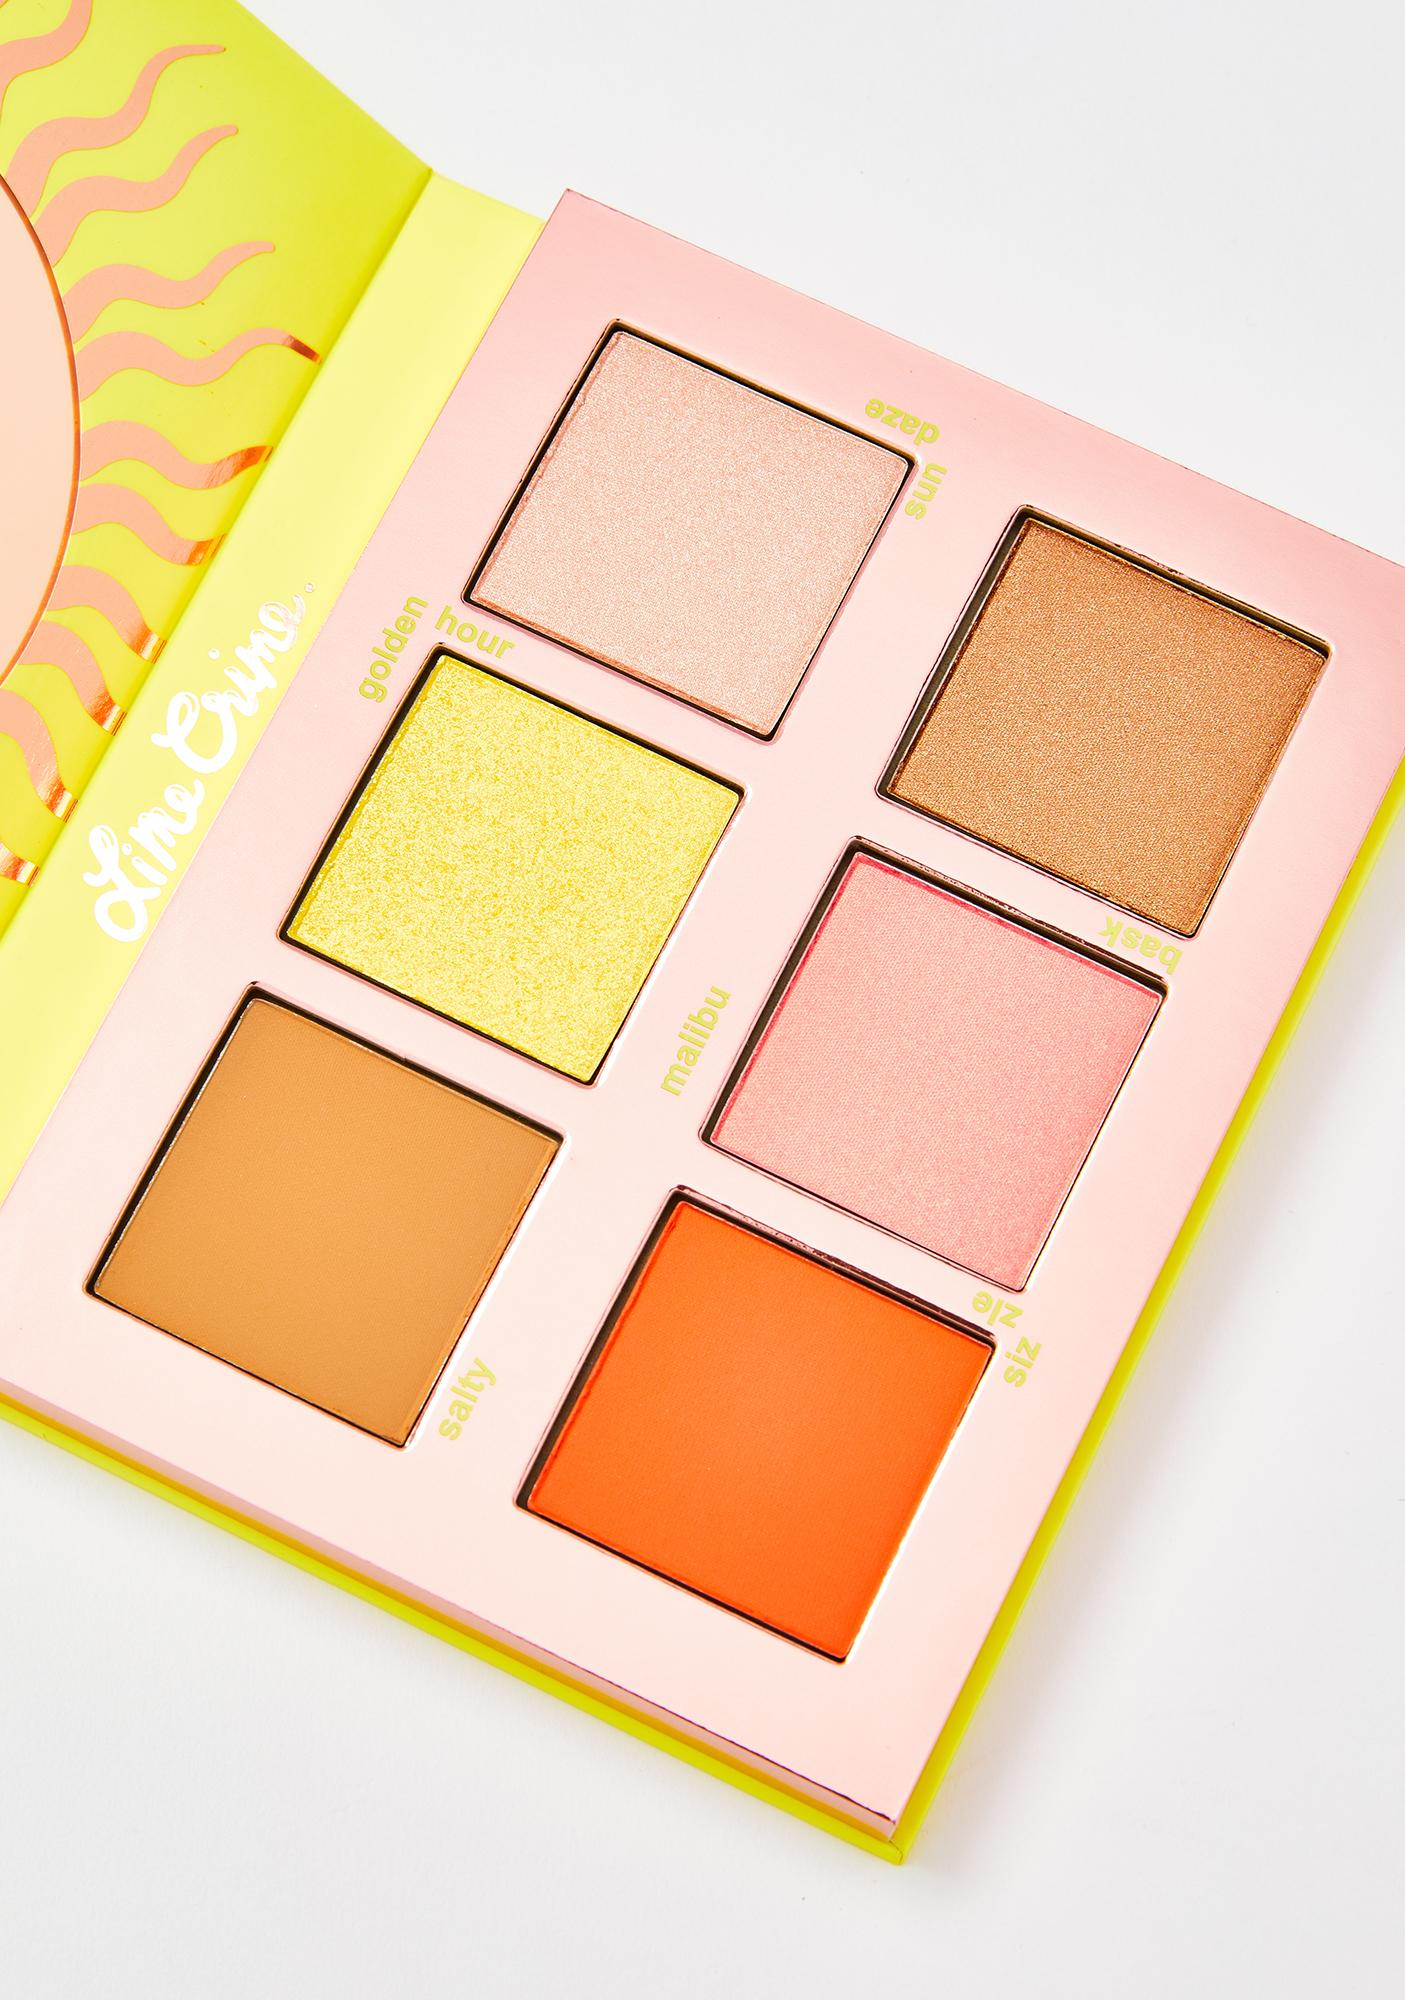 Lime Crime Sunkissed Blush N' Bronze Face Palette